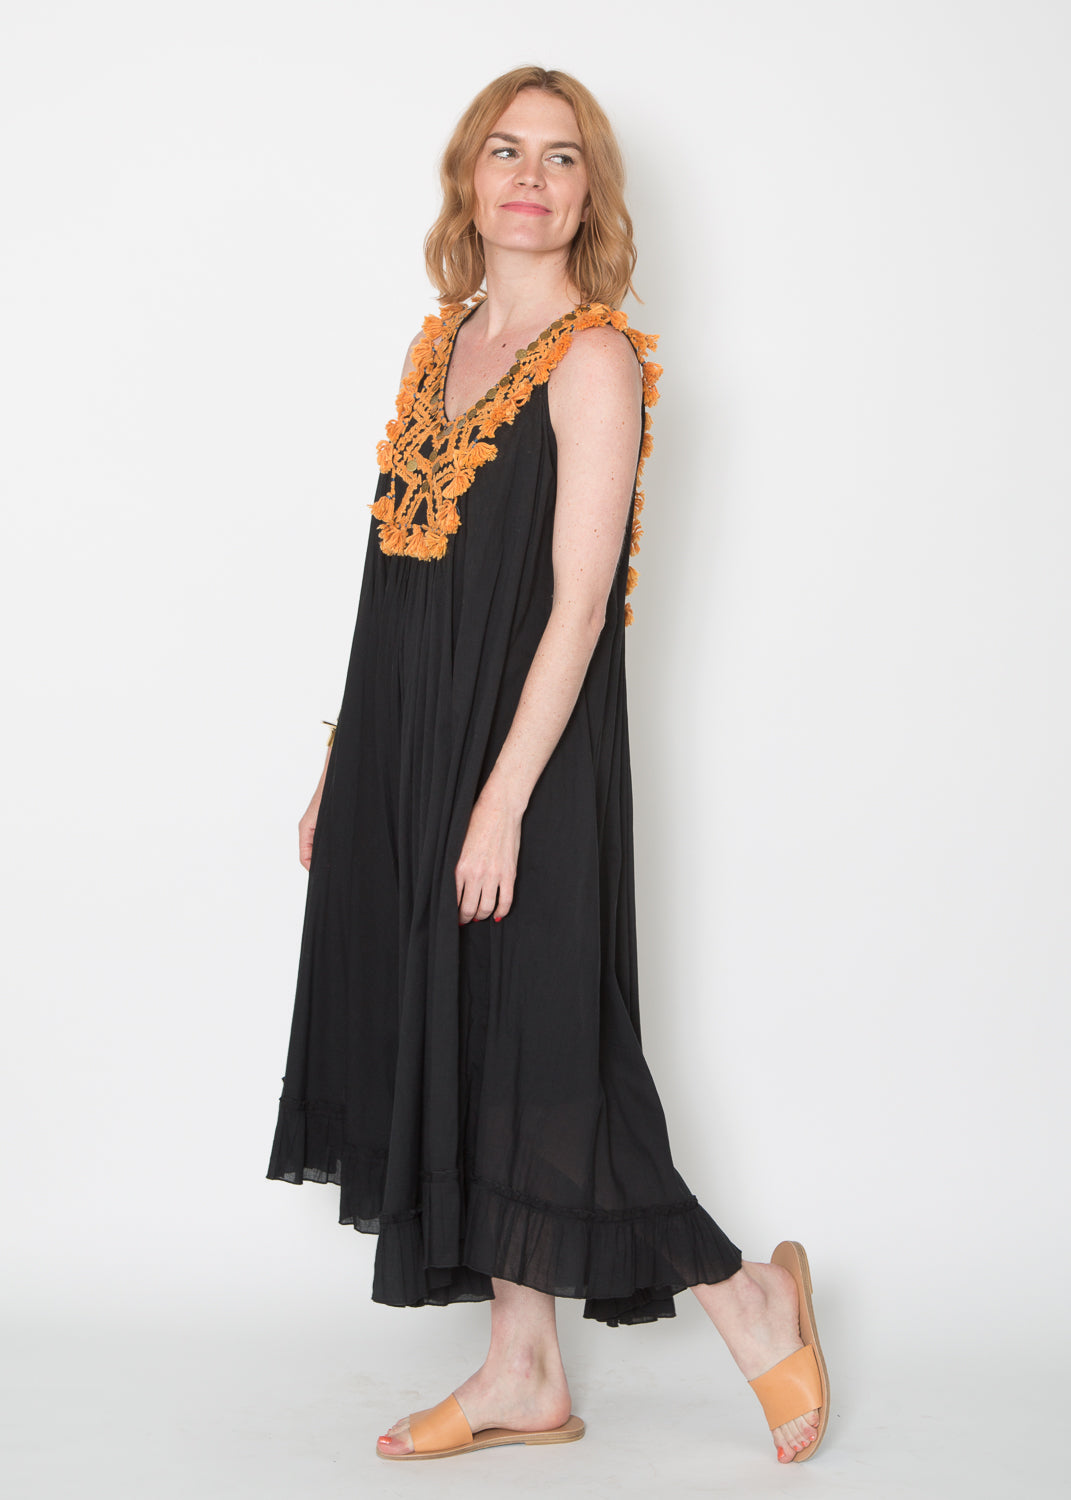 Mes Demoiselles Bodega Dress